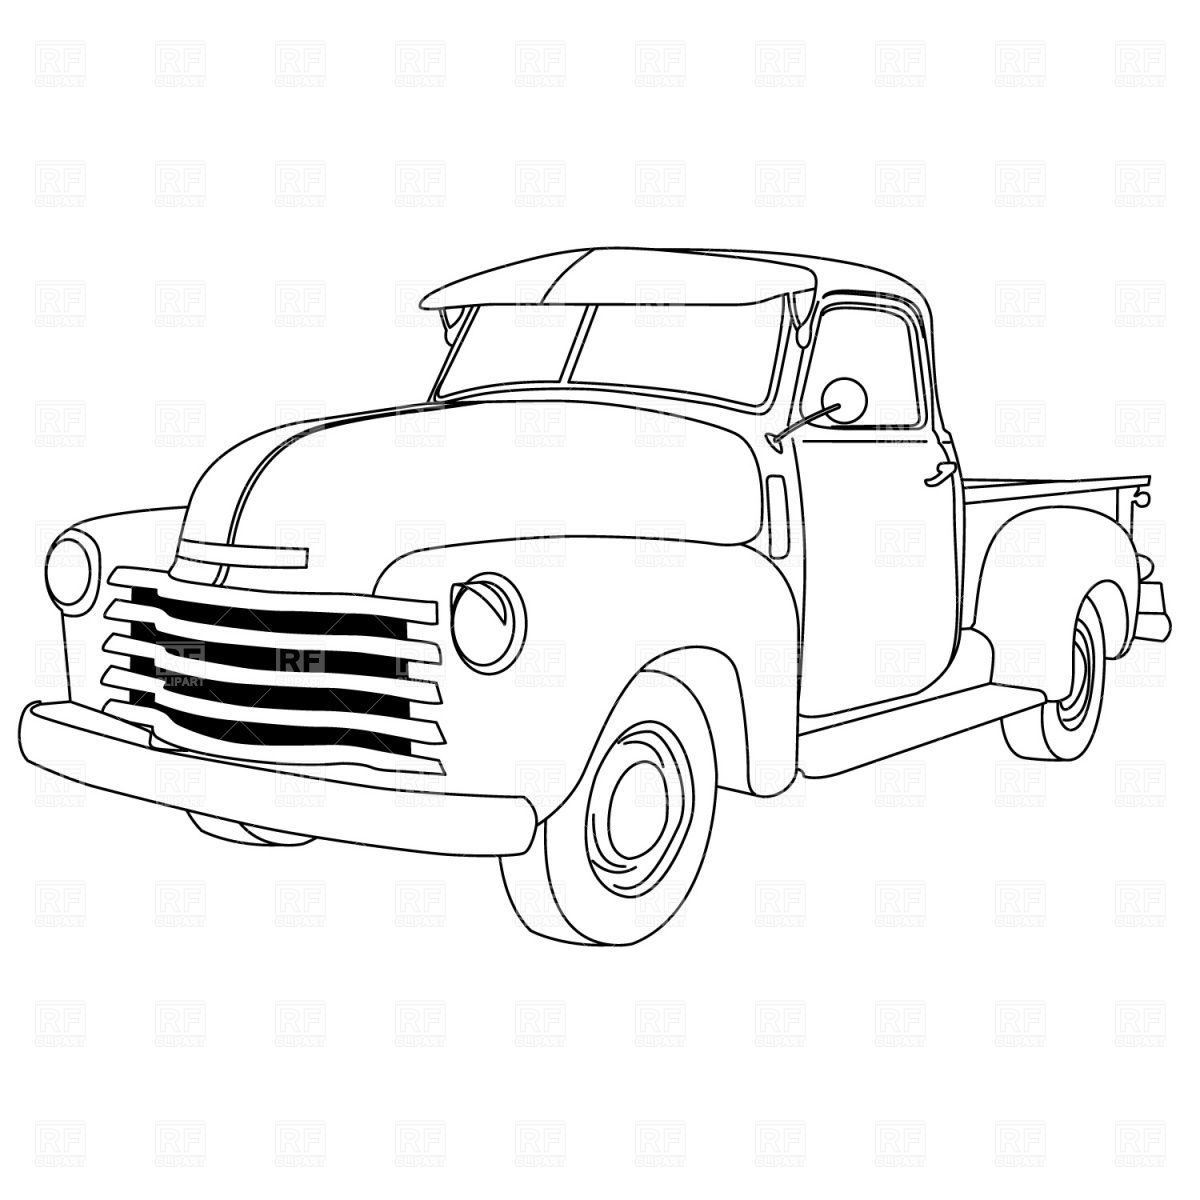 Antique cars coloring pages - 10 Pics Of Antique Truck Coloring Pages Classic Car Coloring